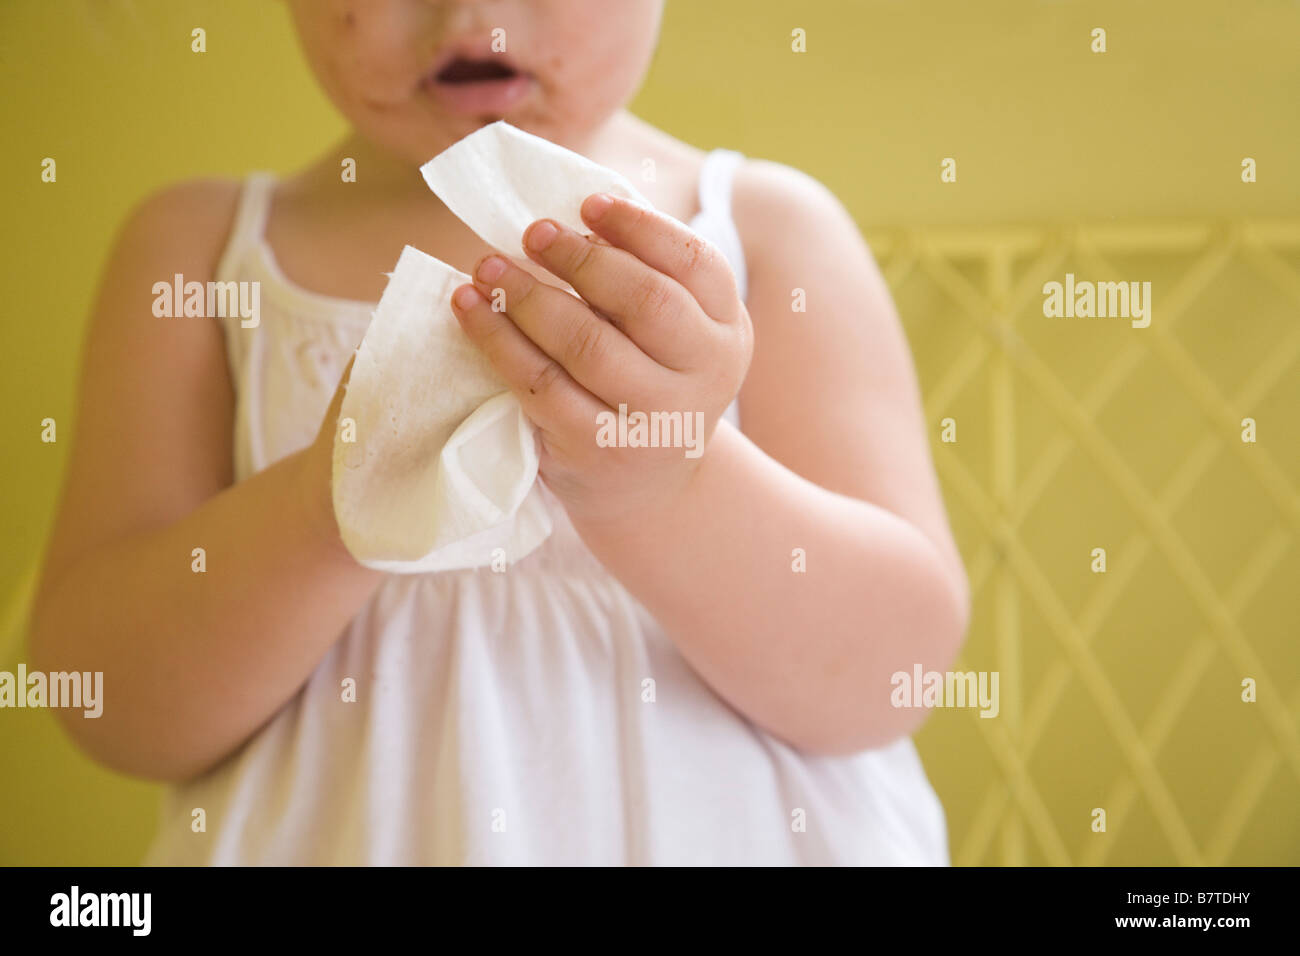 Little girl wiping her dirty fingers - Stock Image